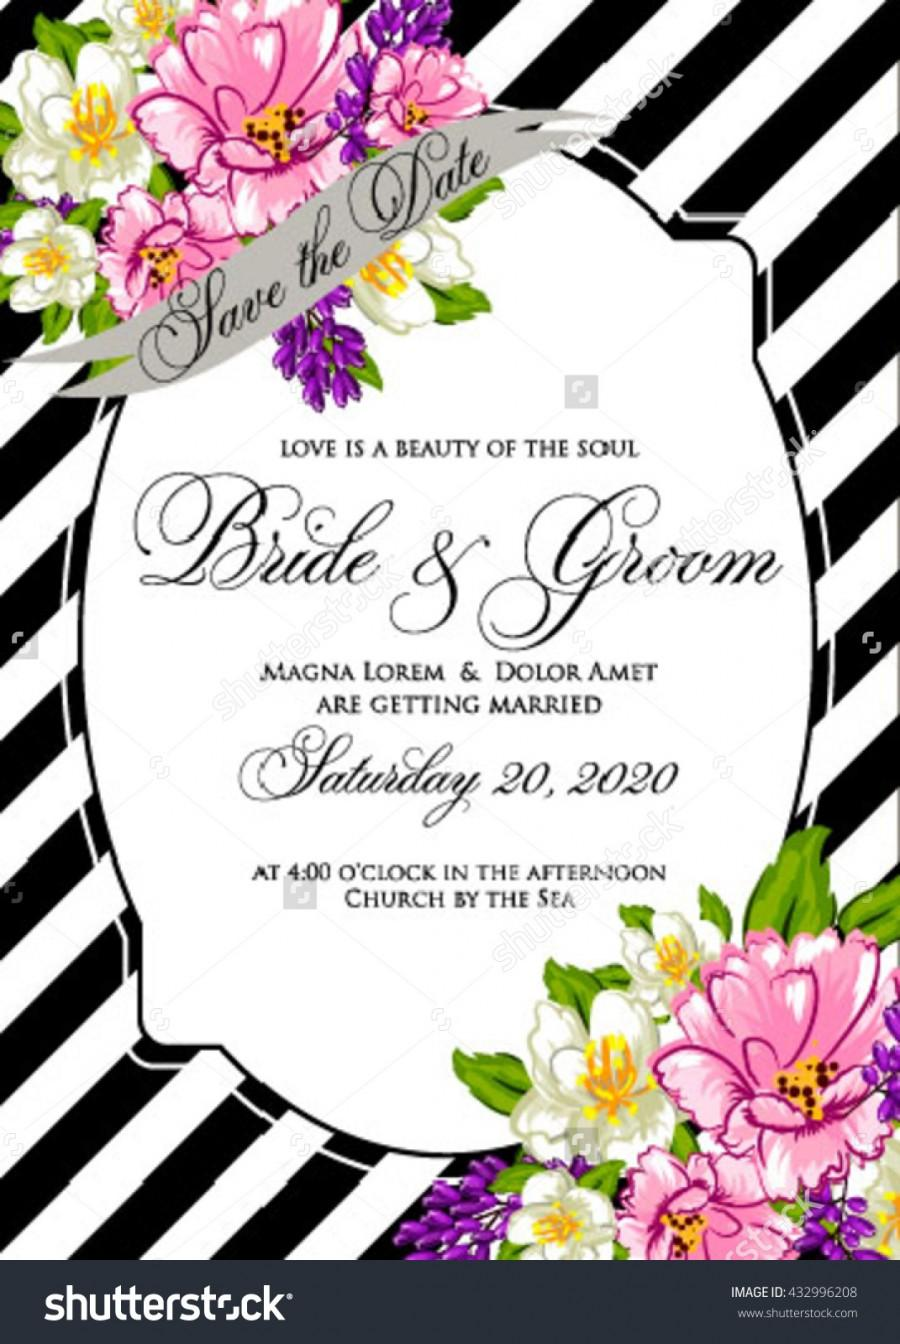 Wedding - Wedding Invitation Exotic tropical flowers on striped background for the holiday. Gold lettering handwriting. Invitation to a party